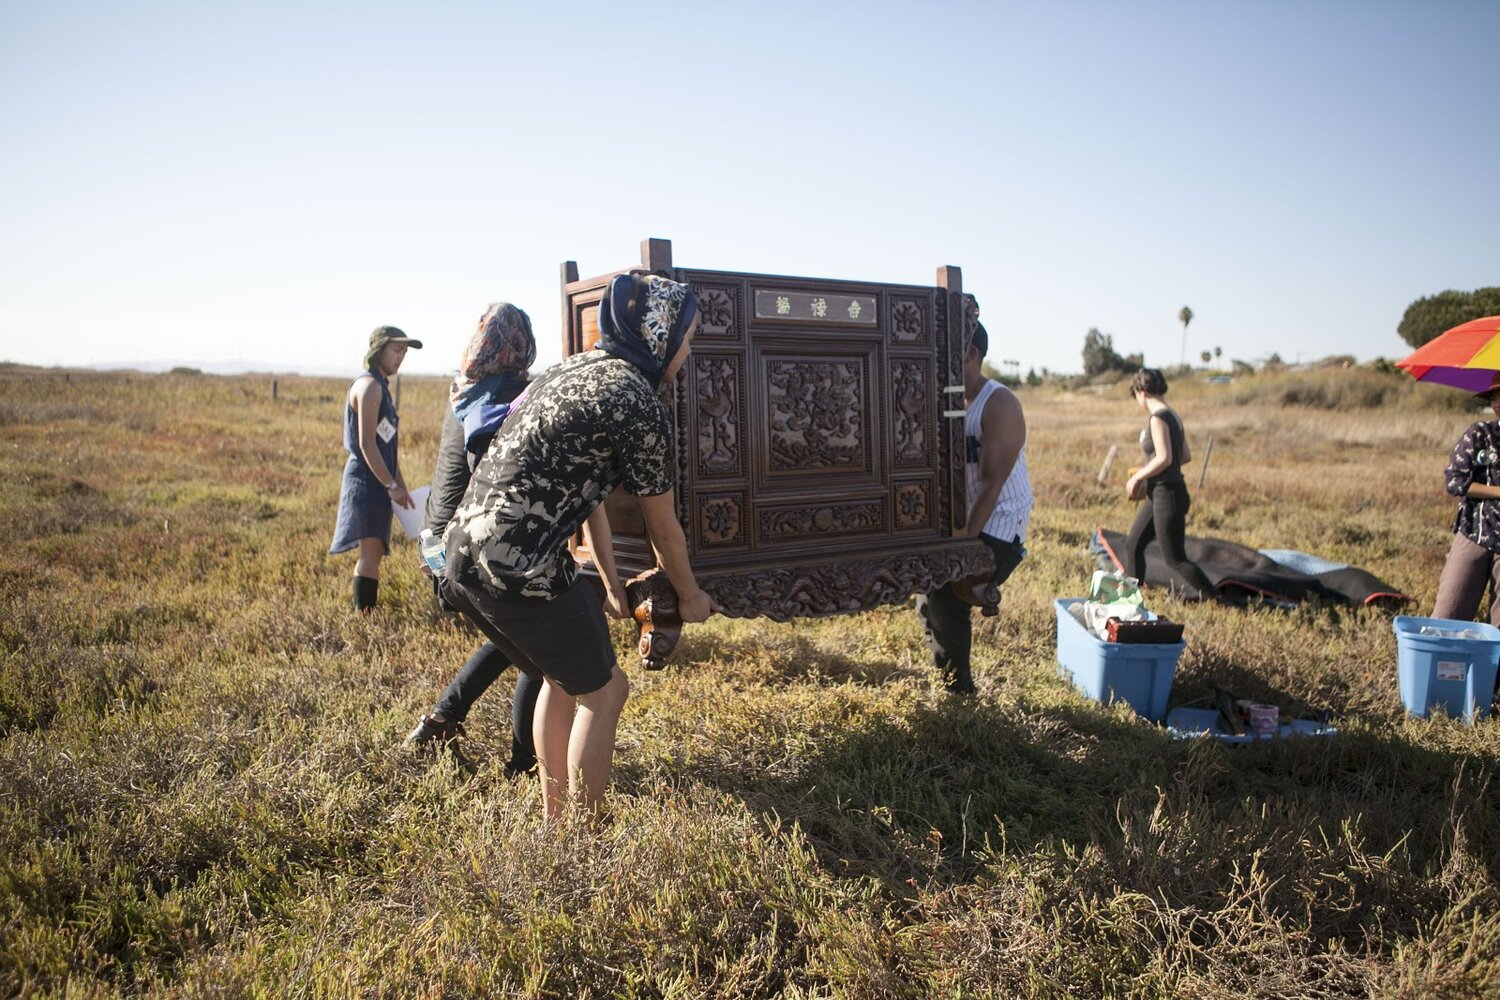 A crew of three people are hauling a 150-lb altar over an open area of dry, grass fields.